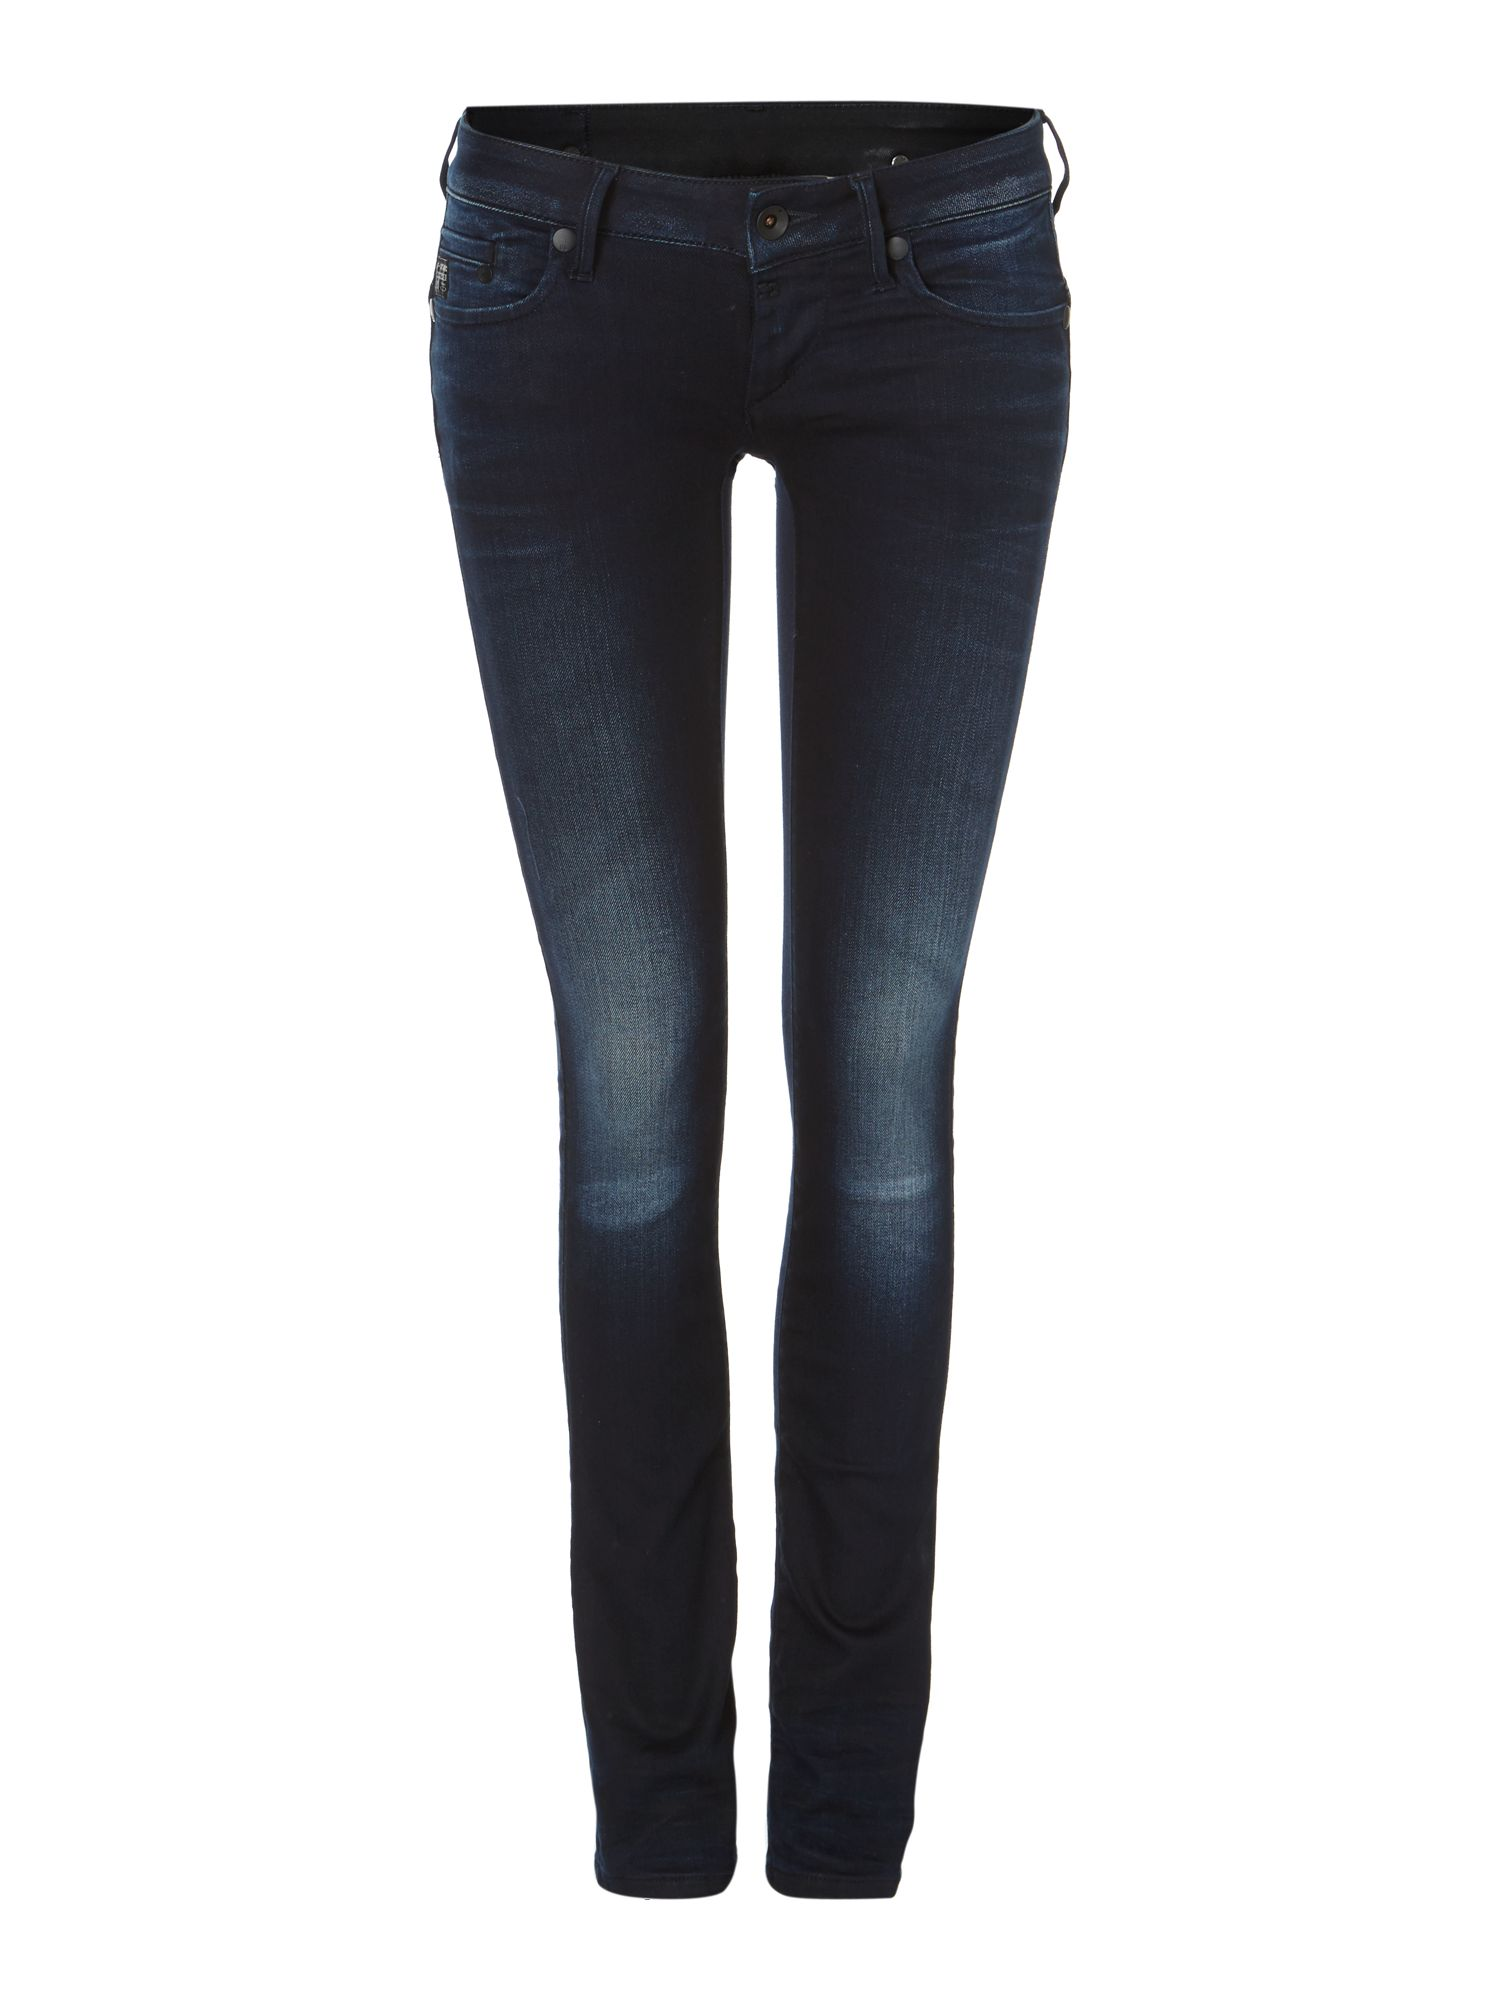 Midge straight jeans in slander navy